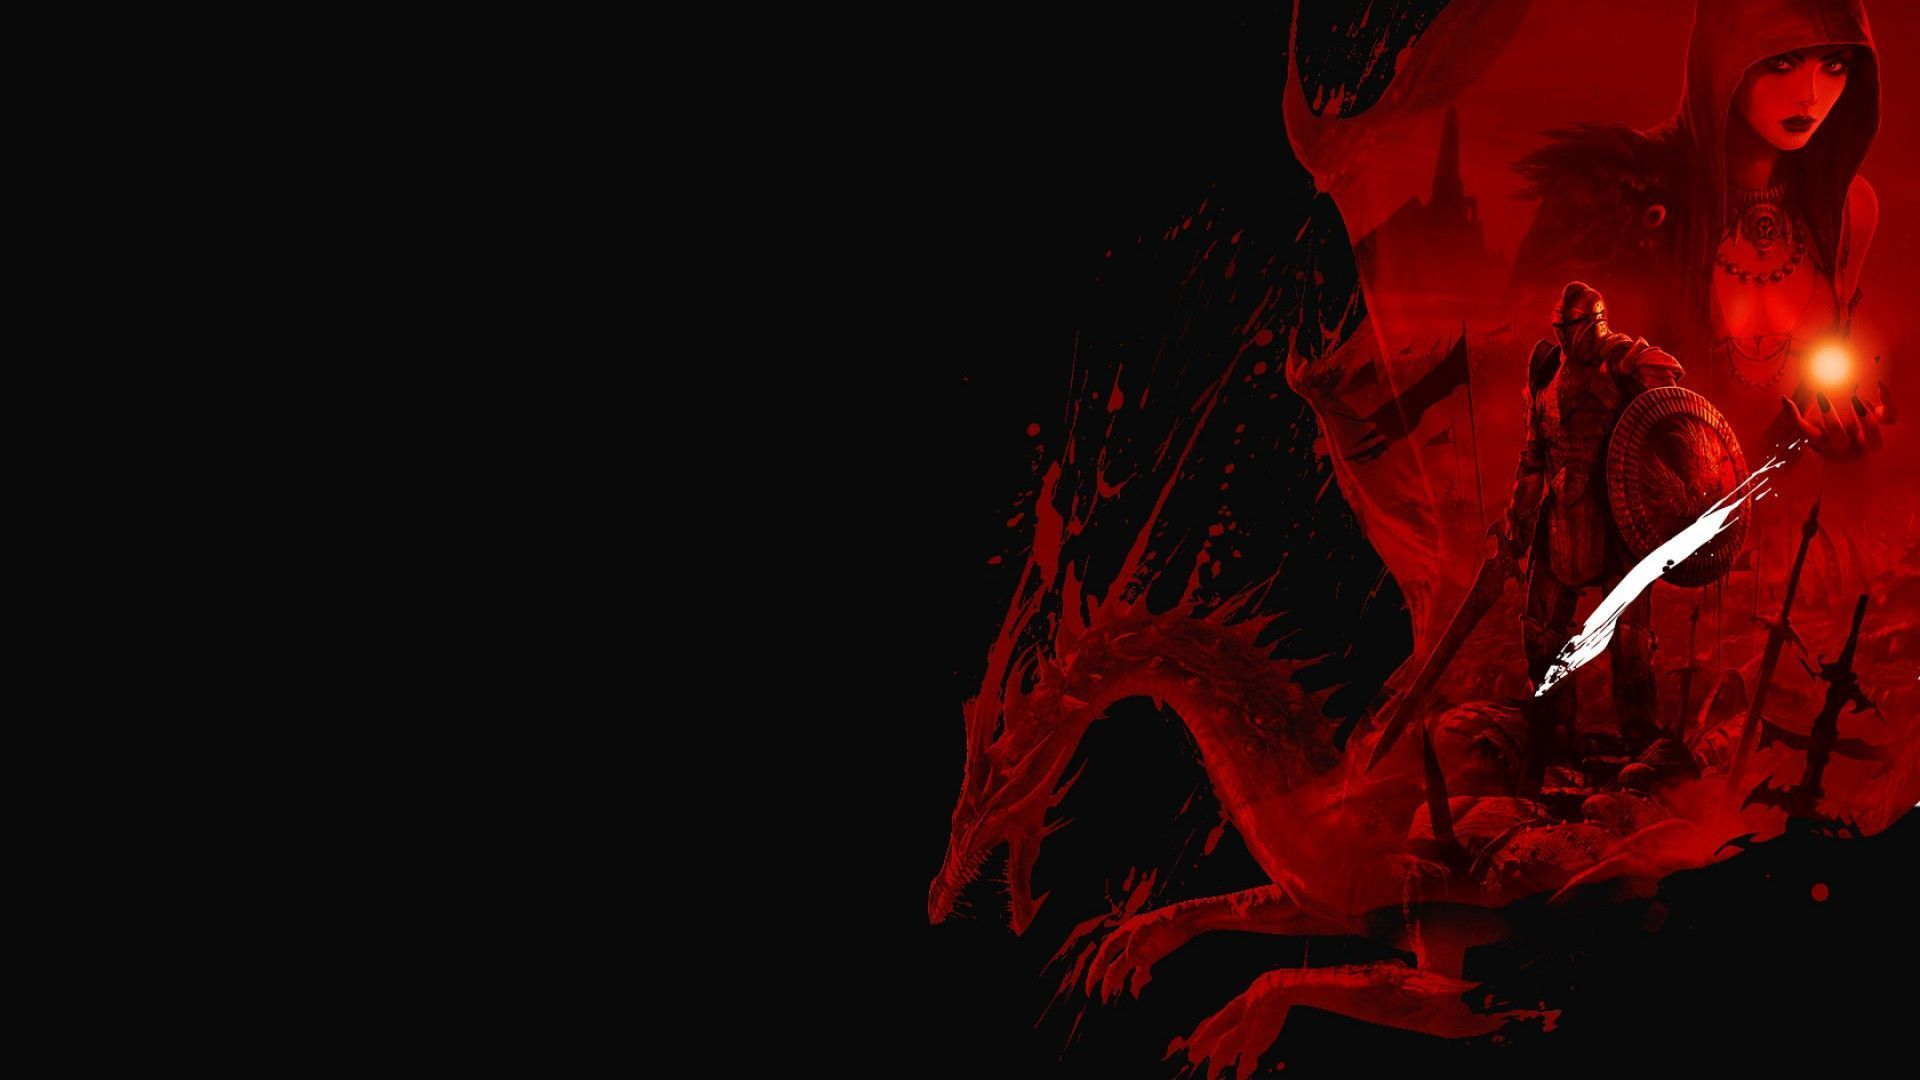 1920x1080 Wallpaper Red And Black Hd Red Gaming Wallpapers